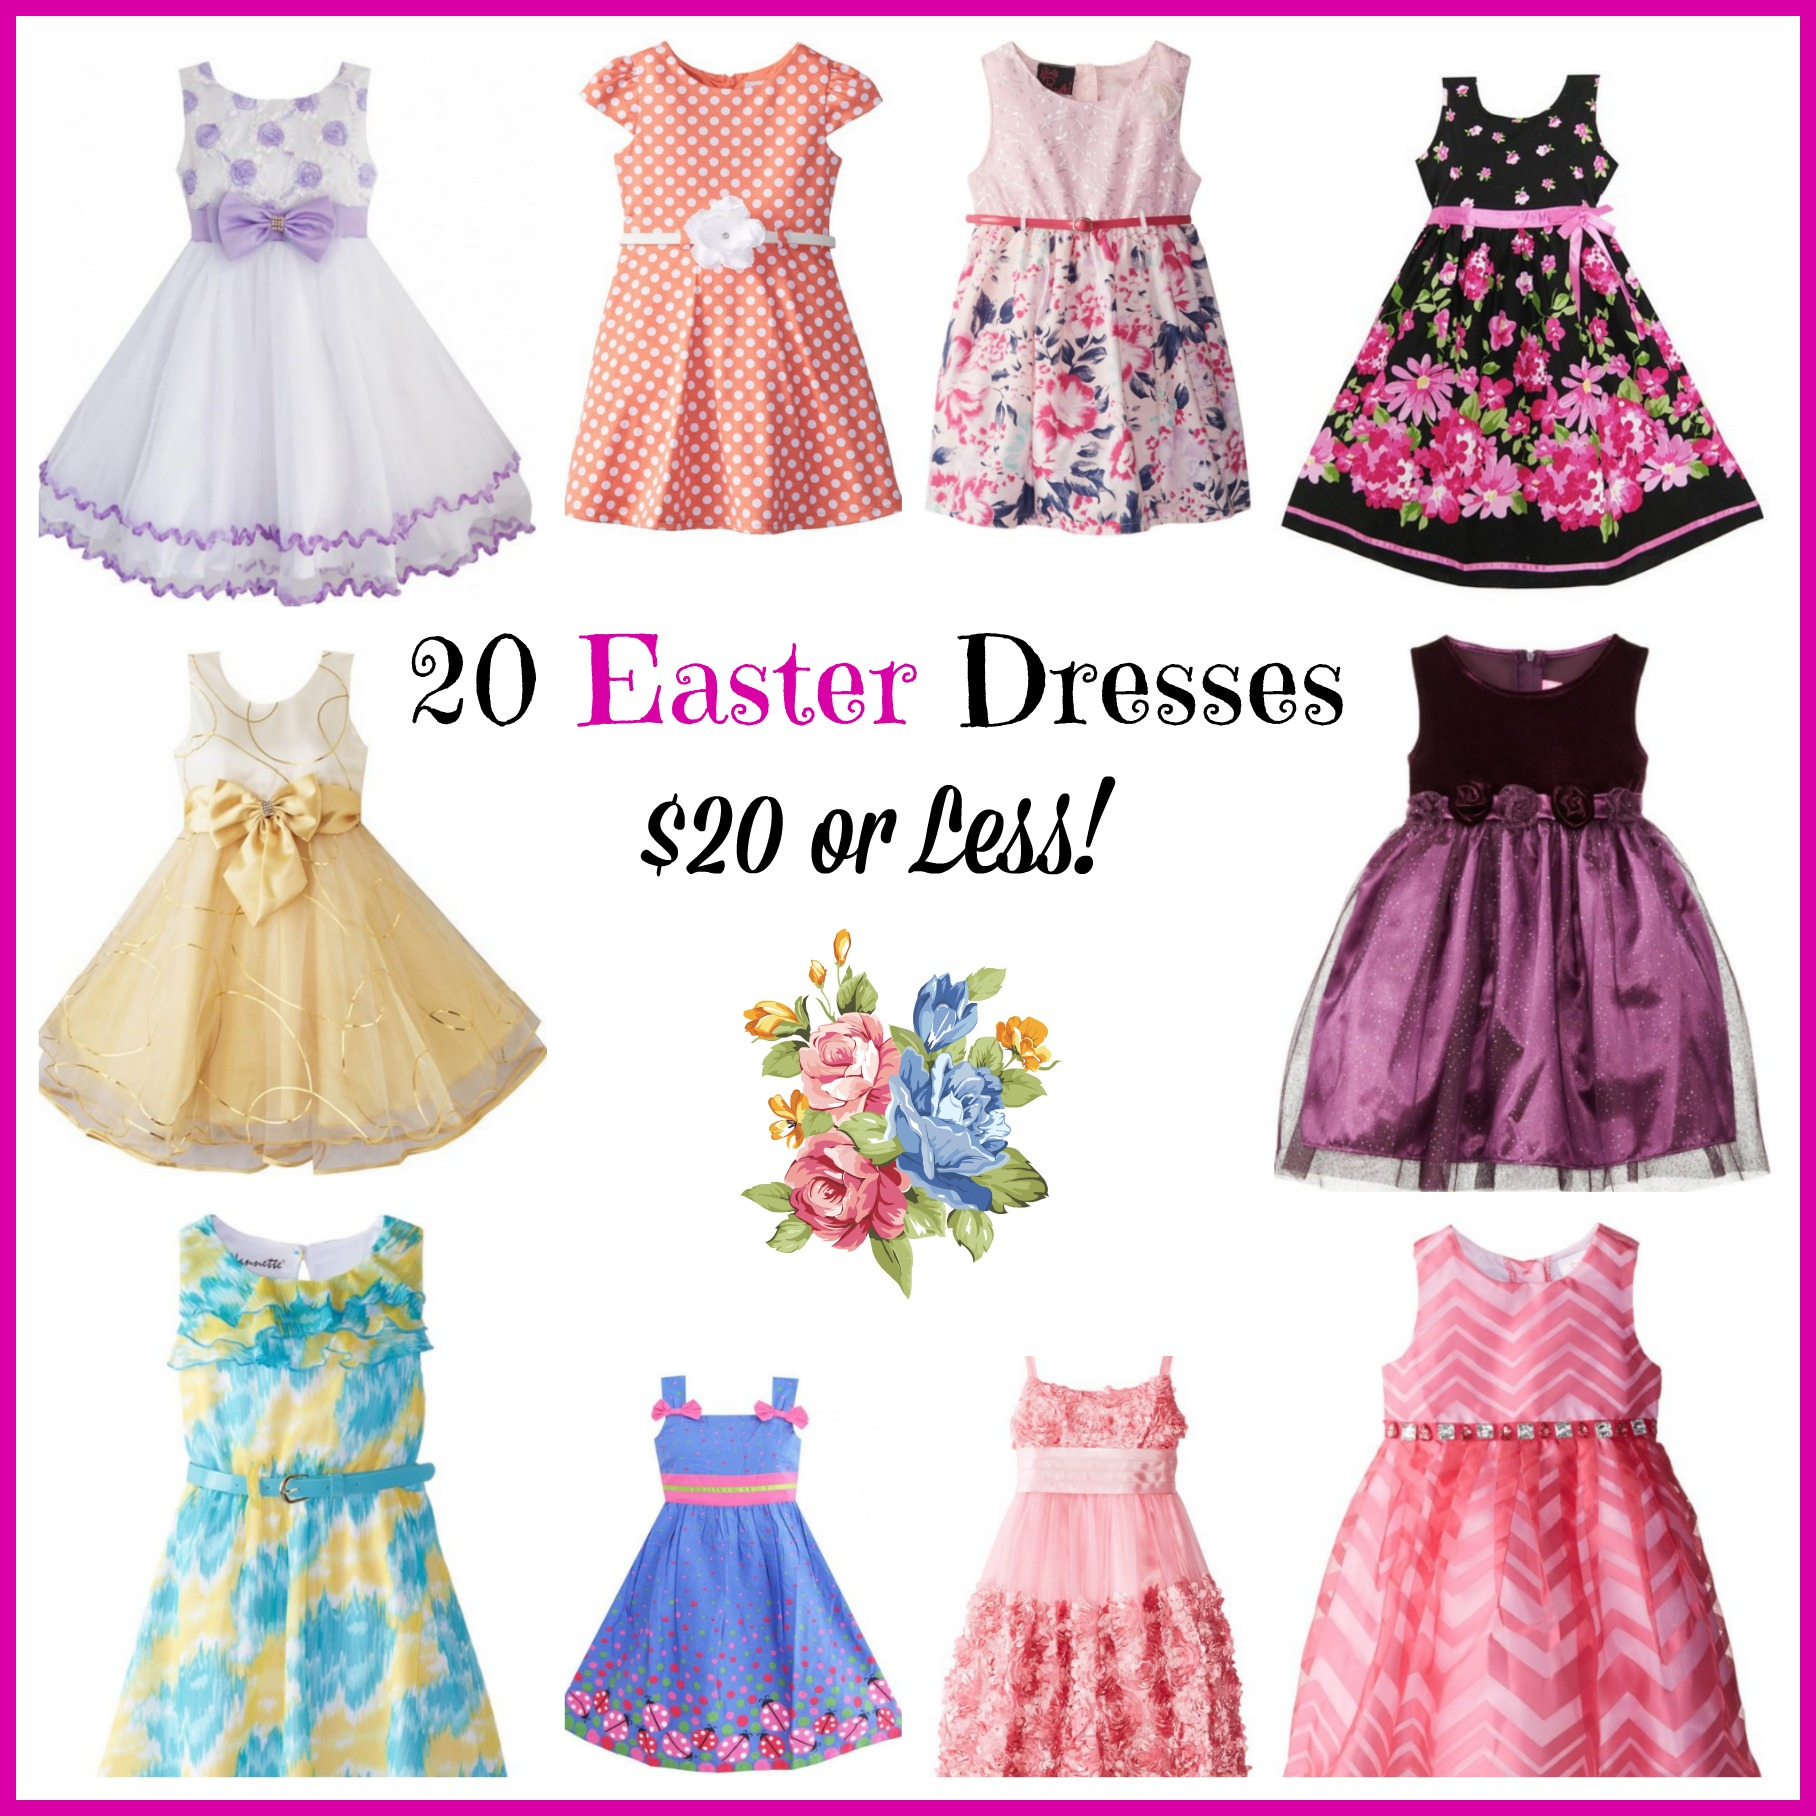 c226671e37d1 20 Cute Girls Easter Dresses Under $20